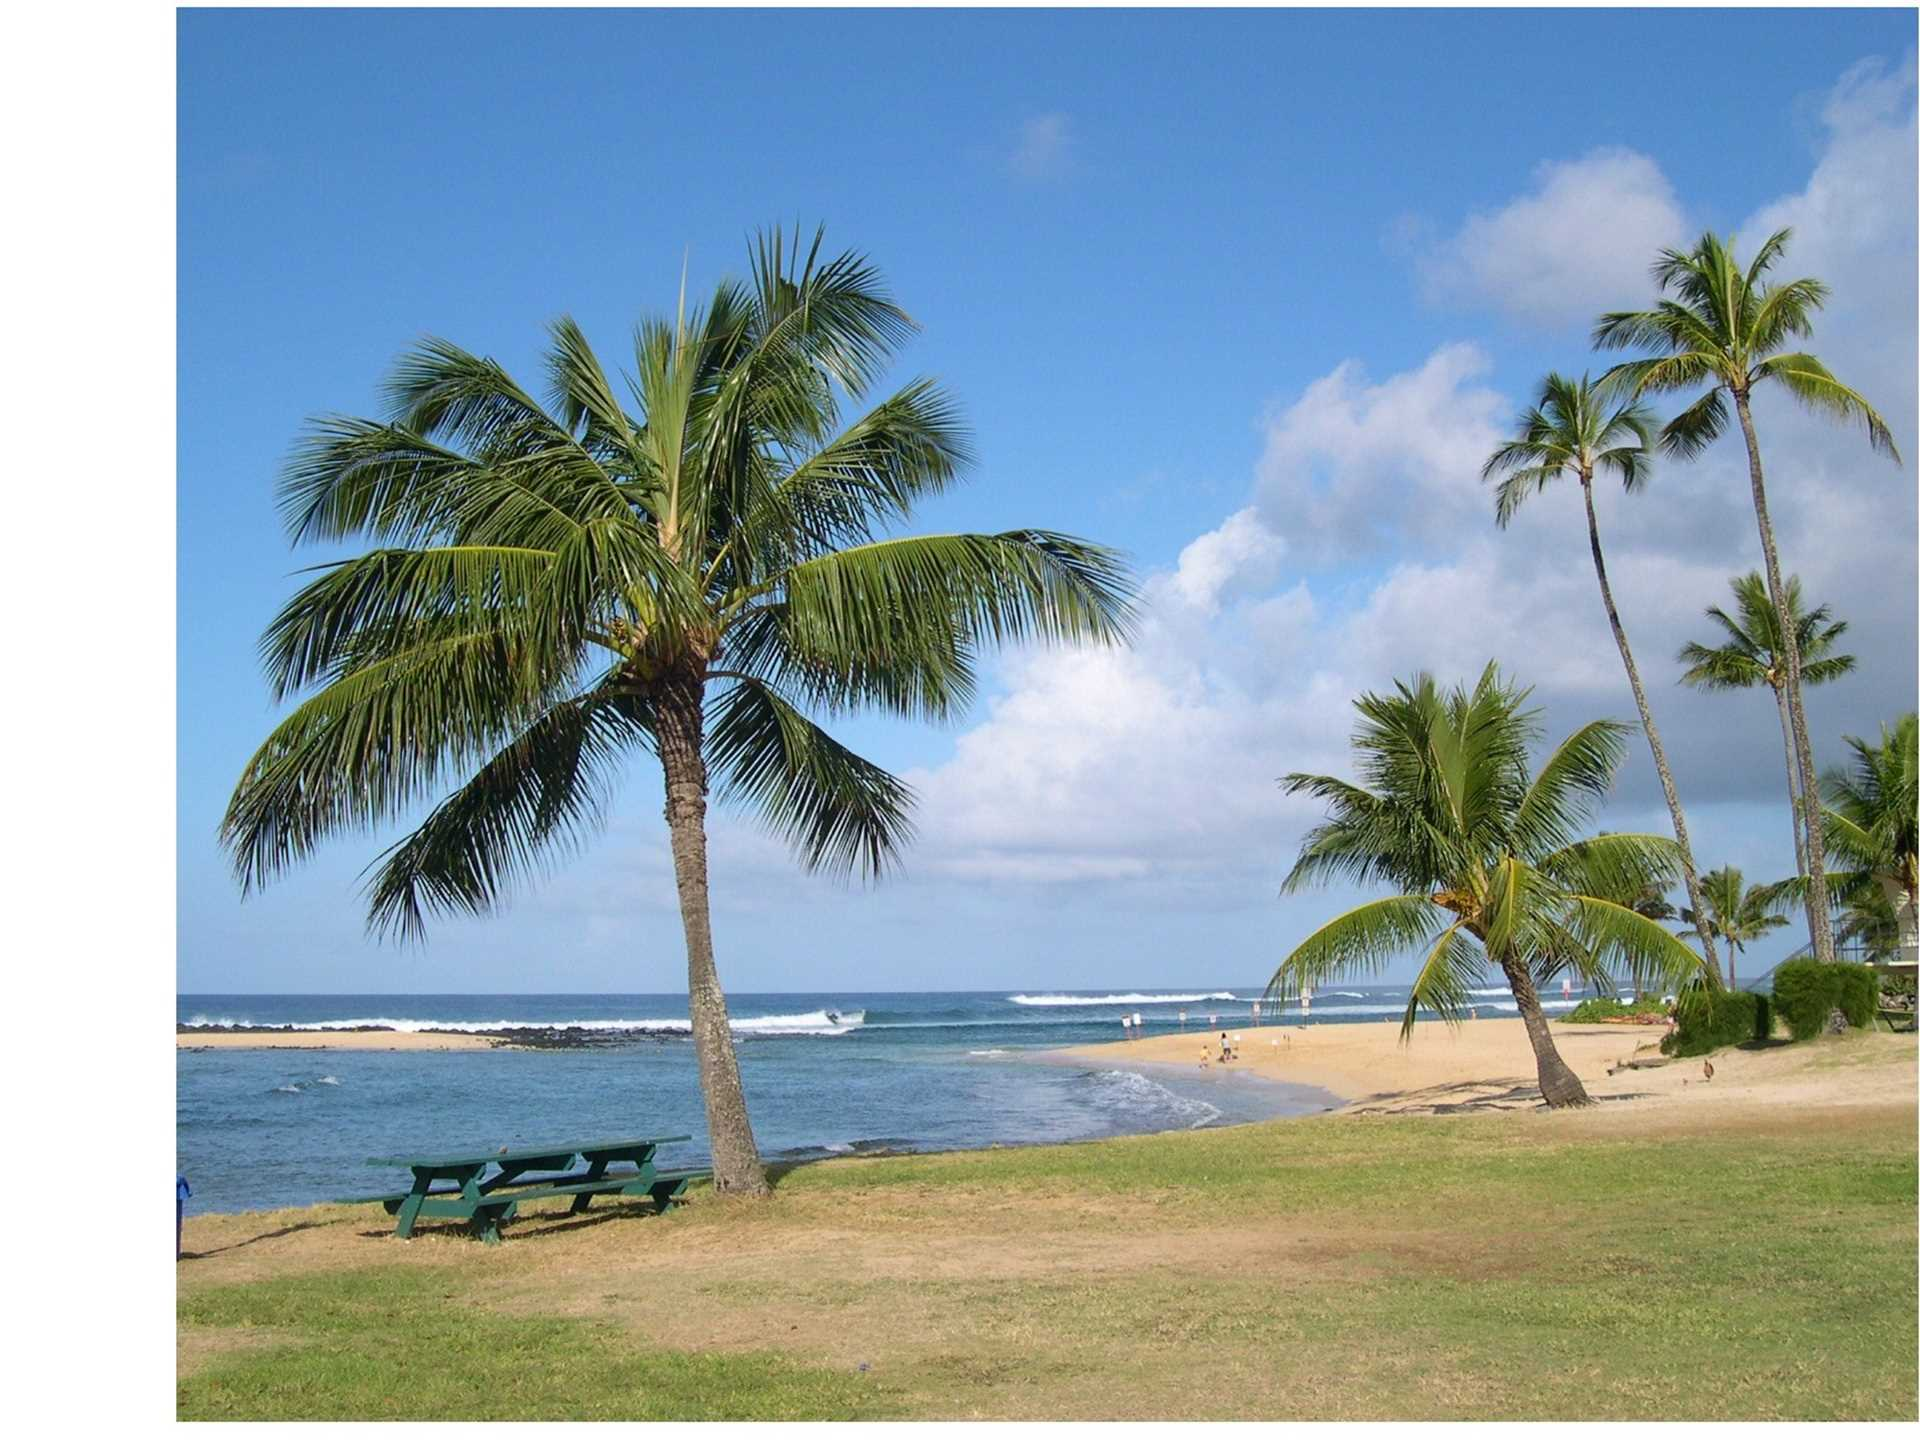 Poipu beach, great swimming, snorkeling, and surfing all year round.